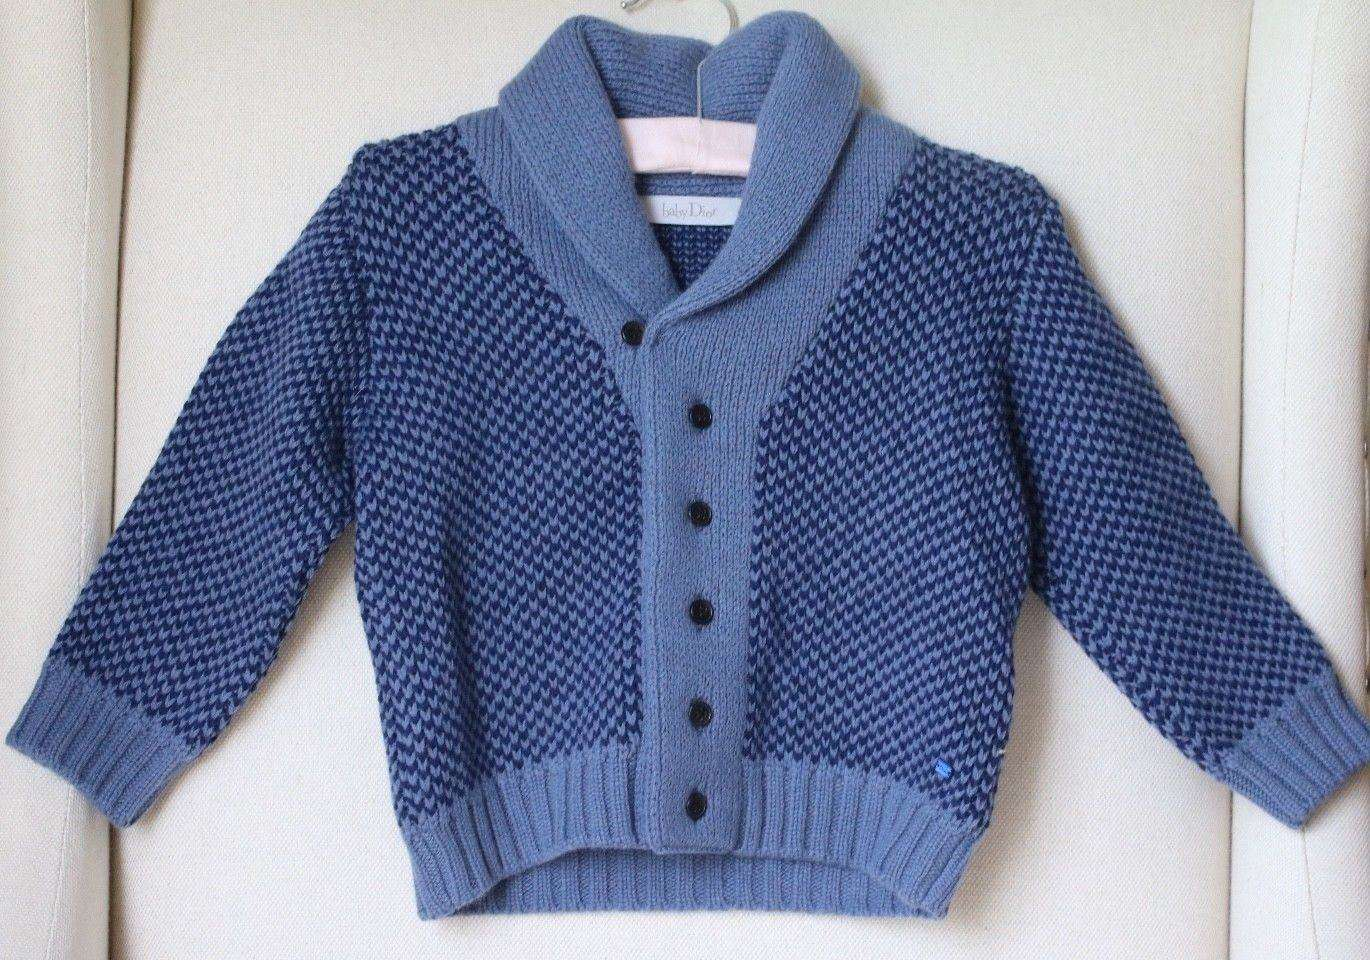 BABY DIOR BOYS BLUE CASHMERE WOOL BLEND KNIT CARDIGAN 18 MONTHS